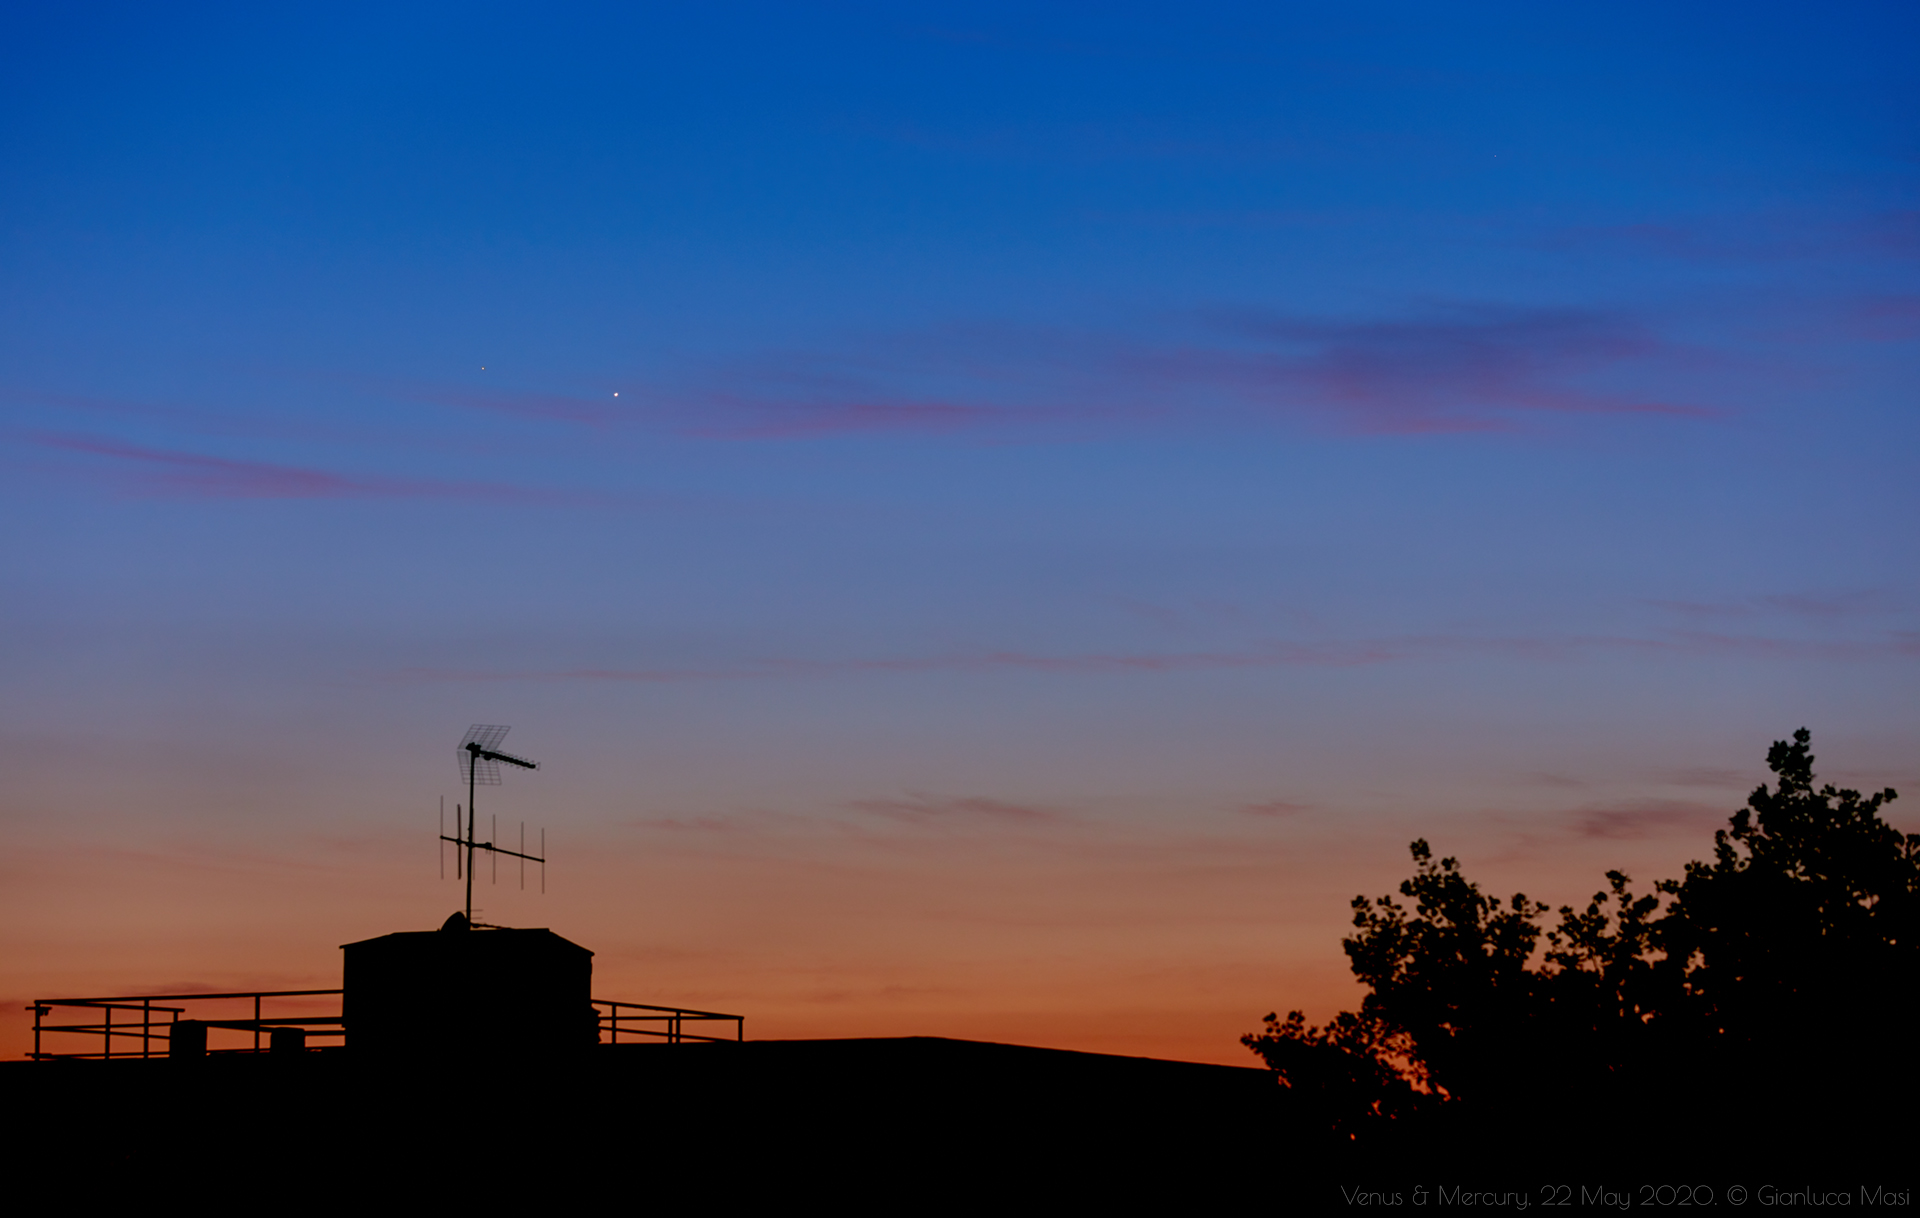 Venus and Mercury shine in the glory of the sunset - 22 May 2020.